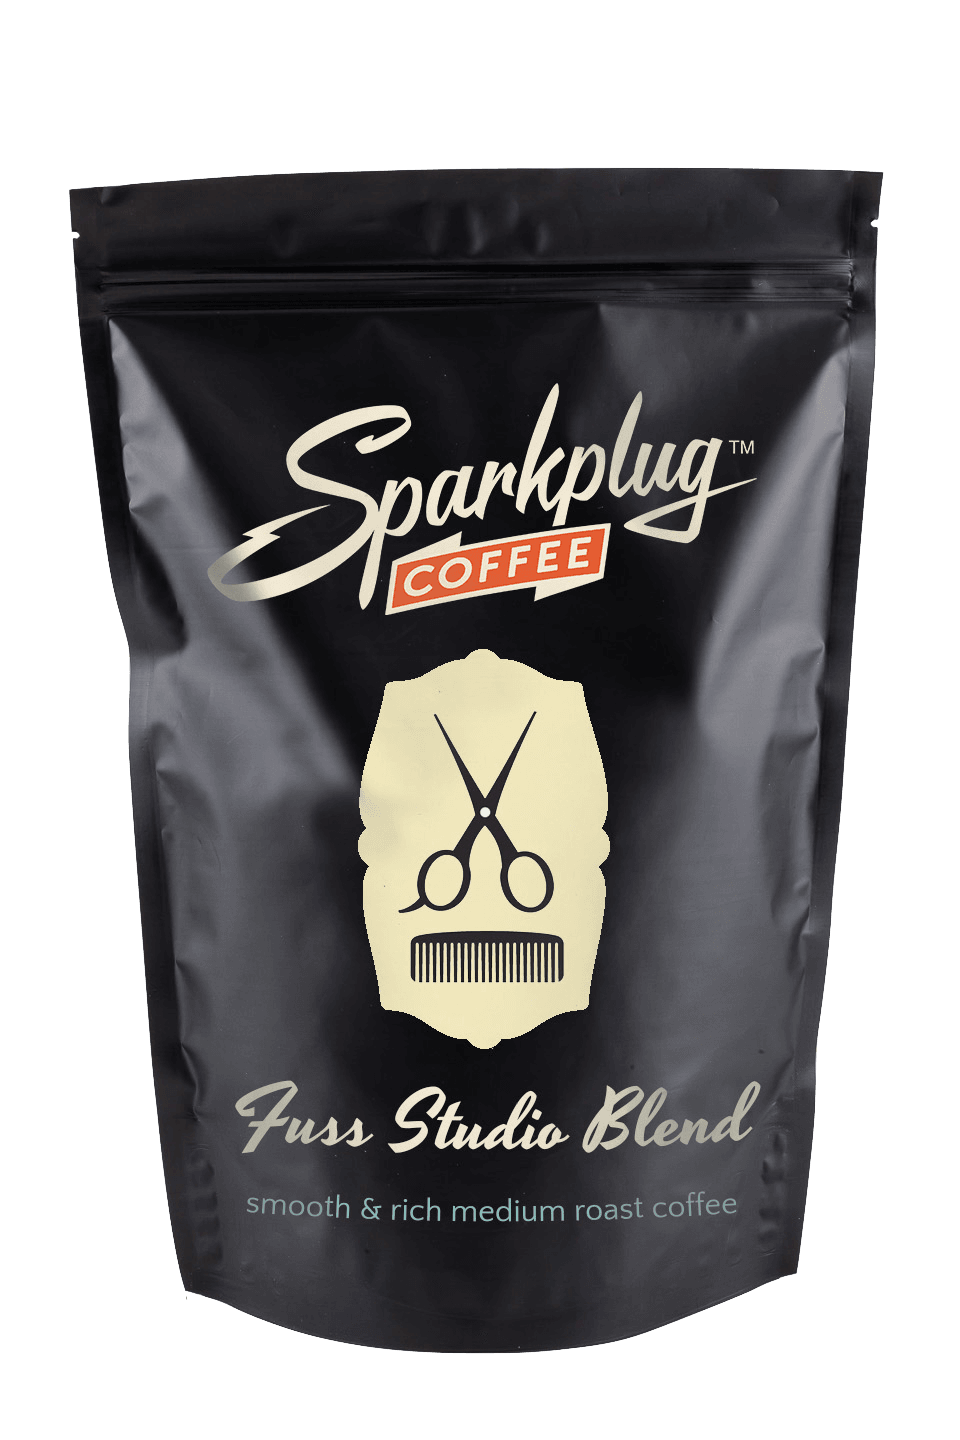 B rand our coffee with YOUR business! We love creating custom blends and custom labels! (And there's no extra cost to you!) Contact us and let's get started on a custom design!